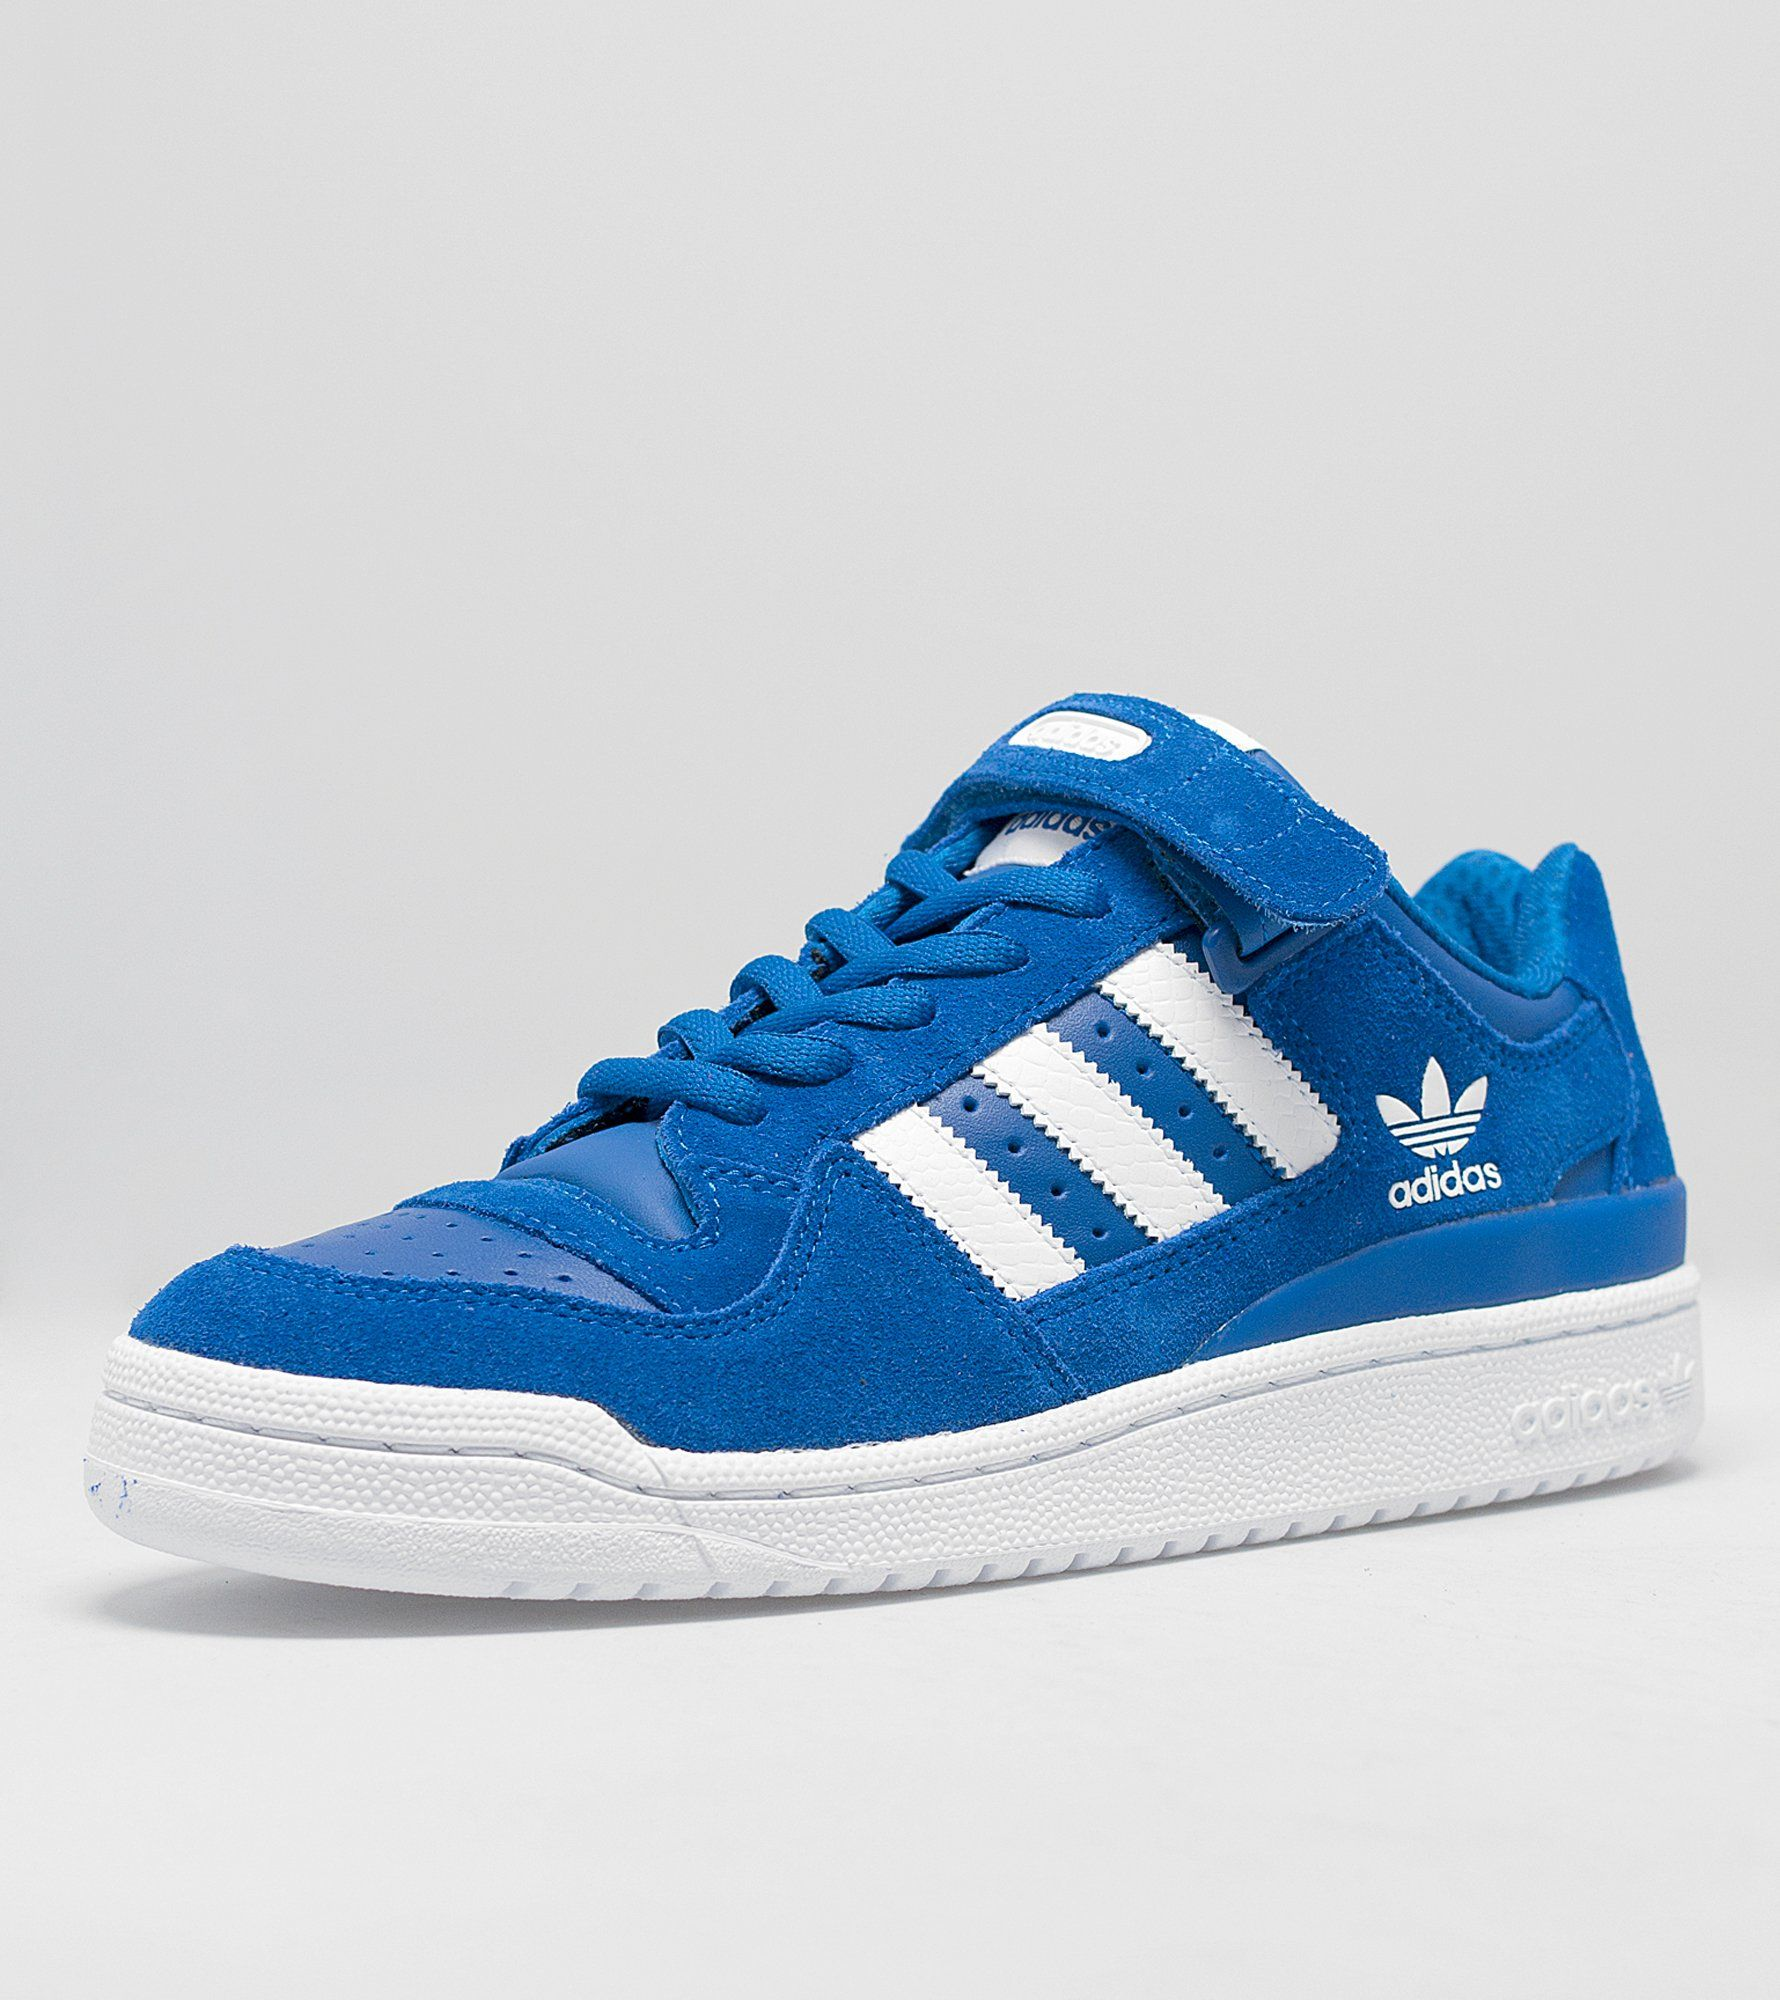 53a21584a2b adidas Originals Forum Lo